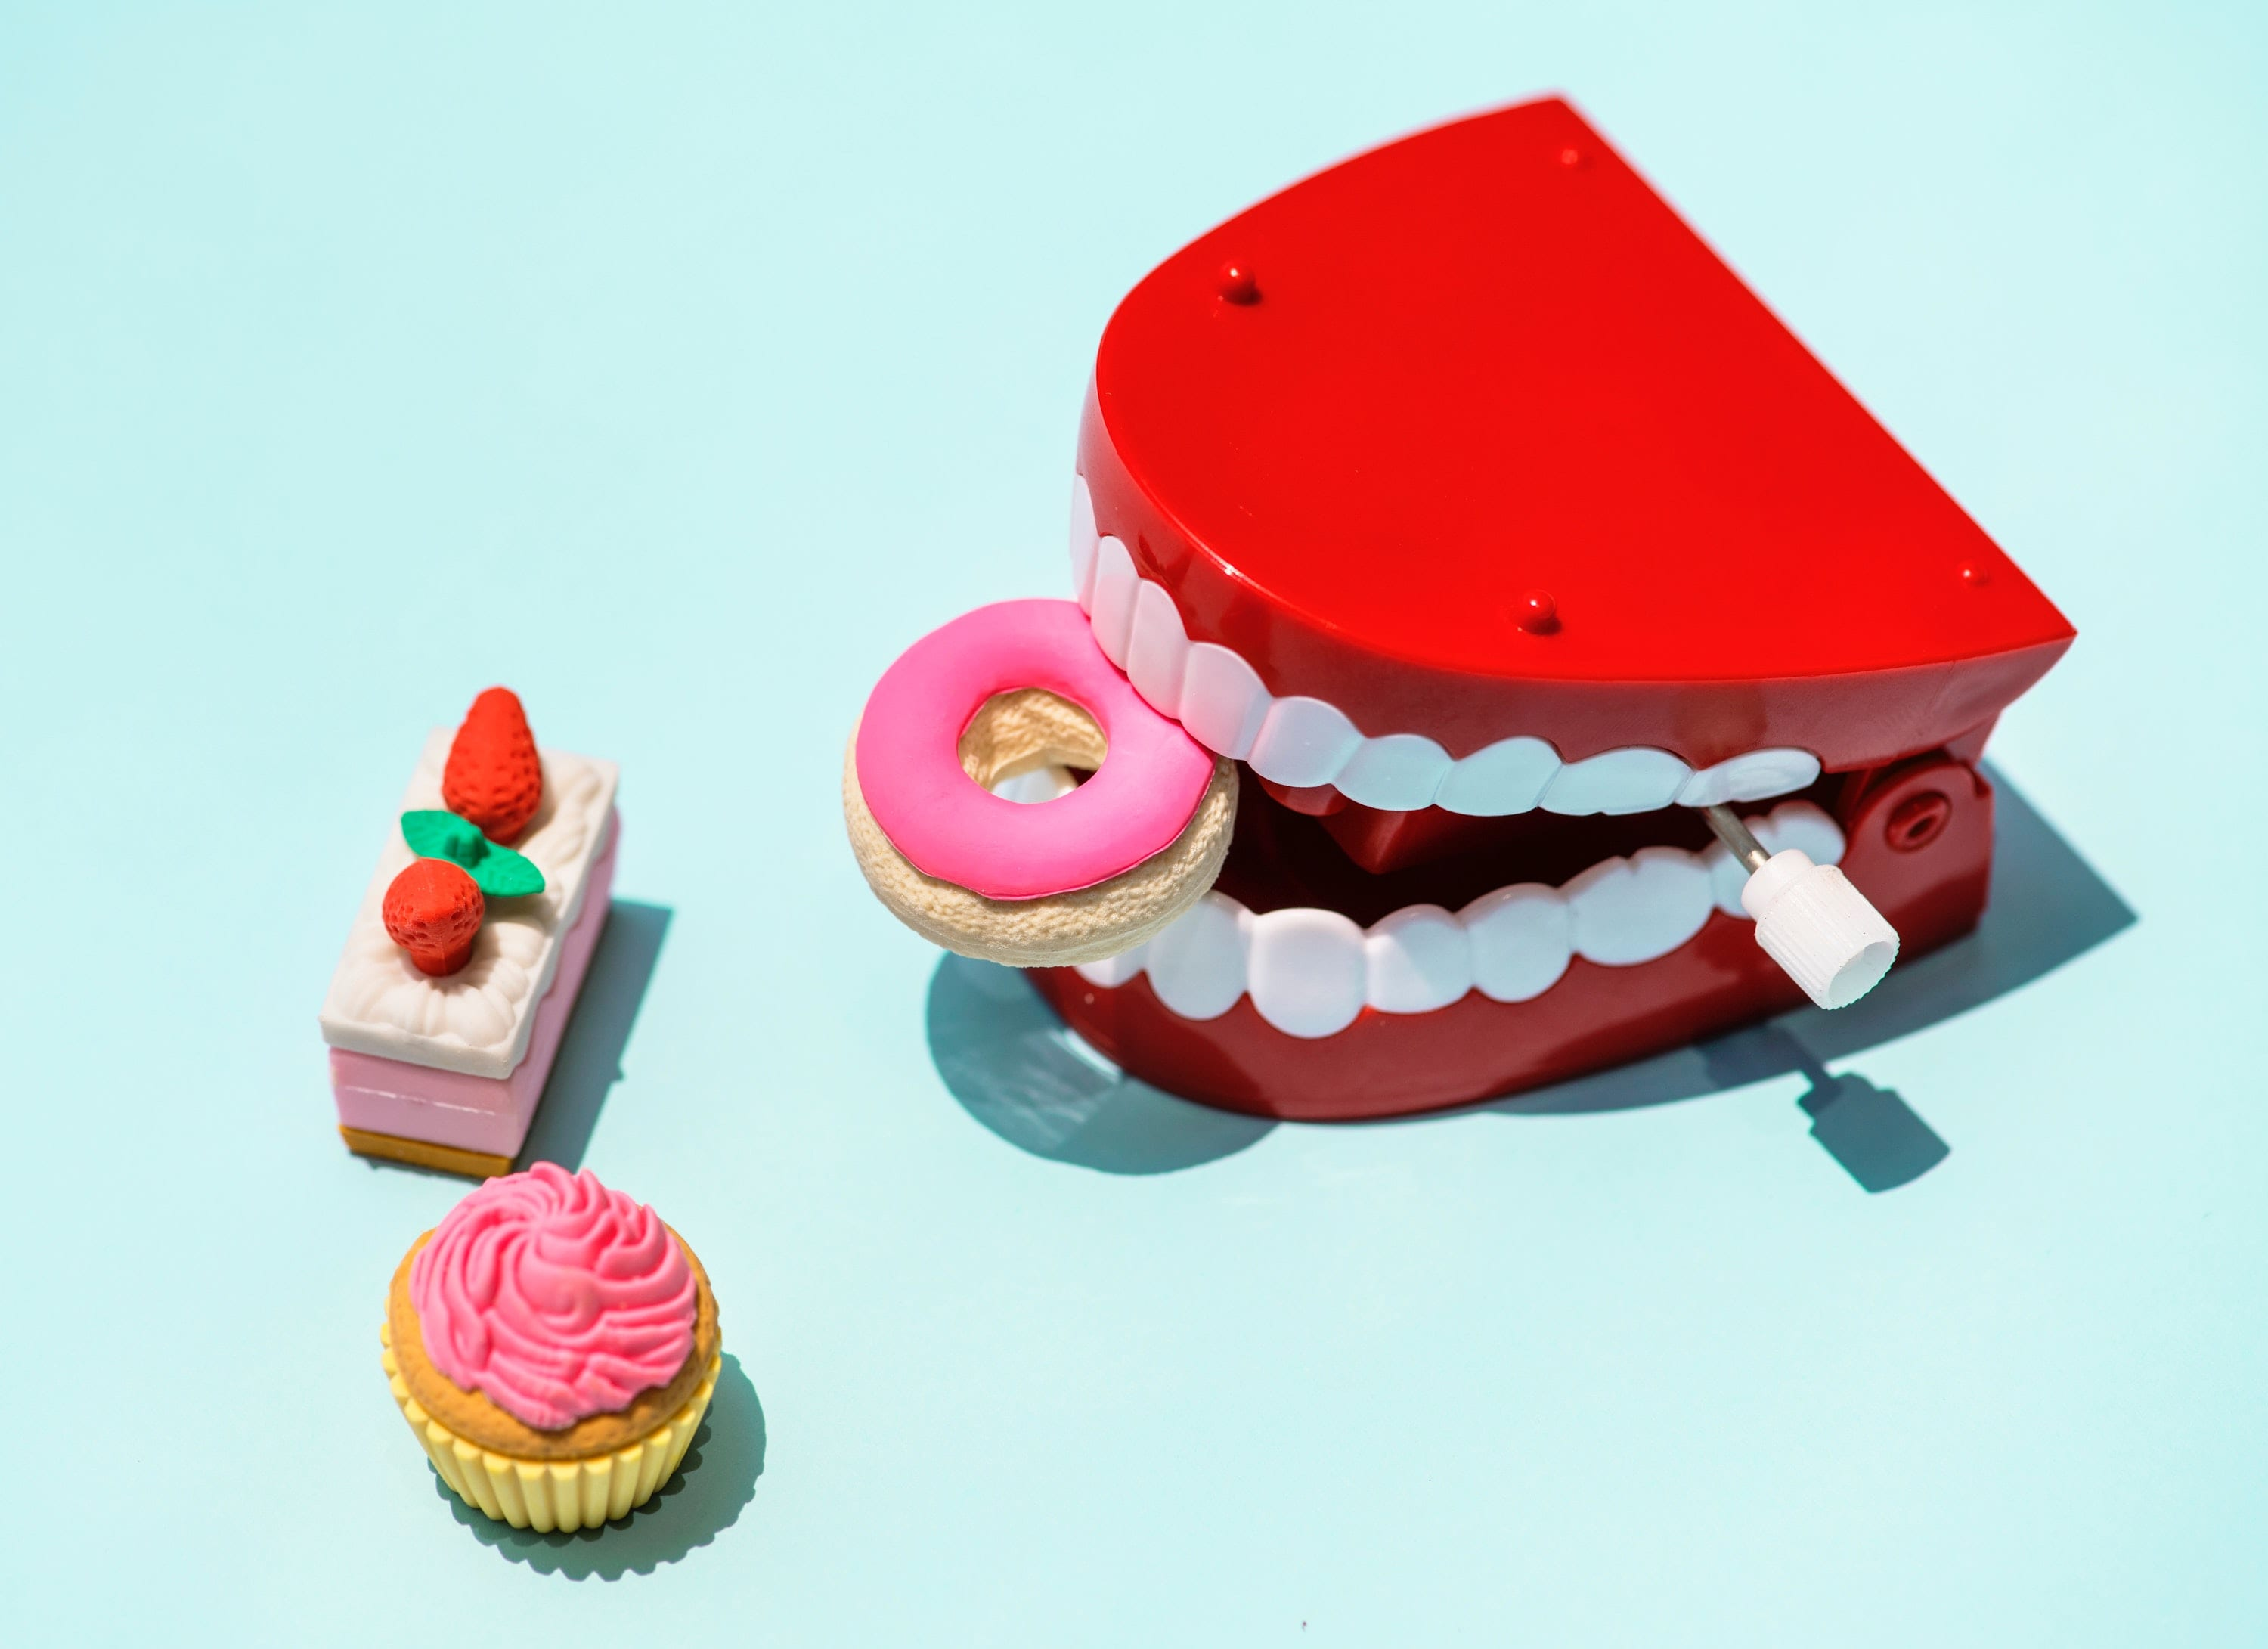 Photo: teeth eating a donut